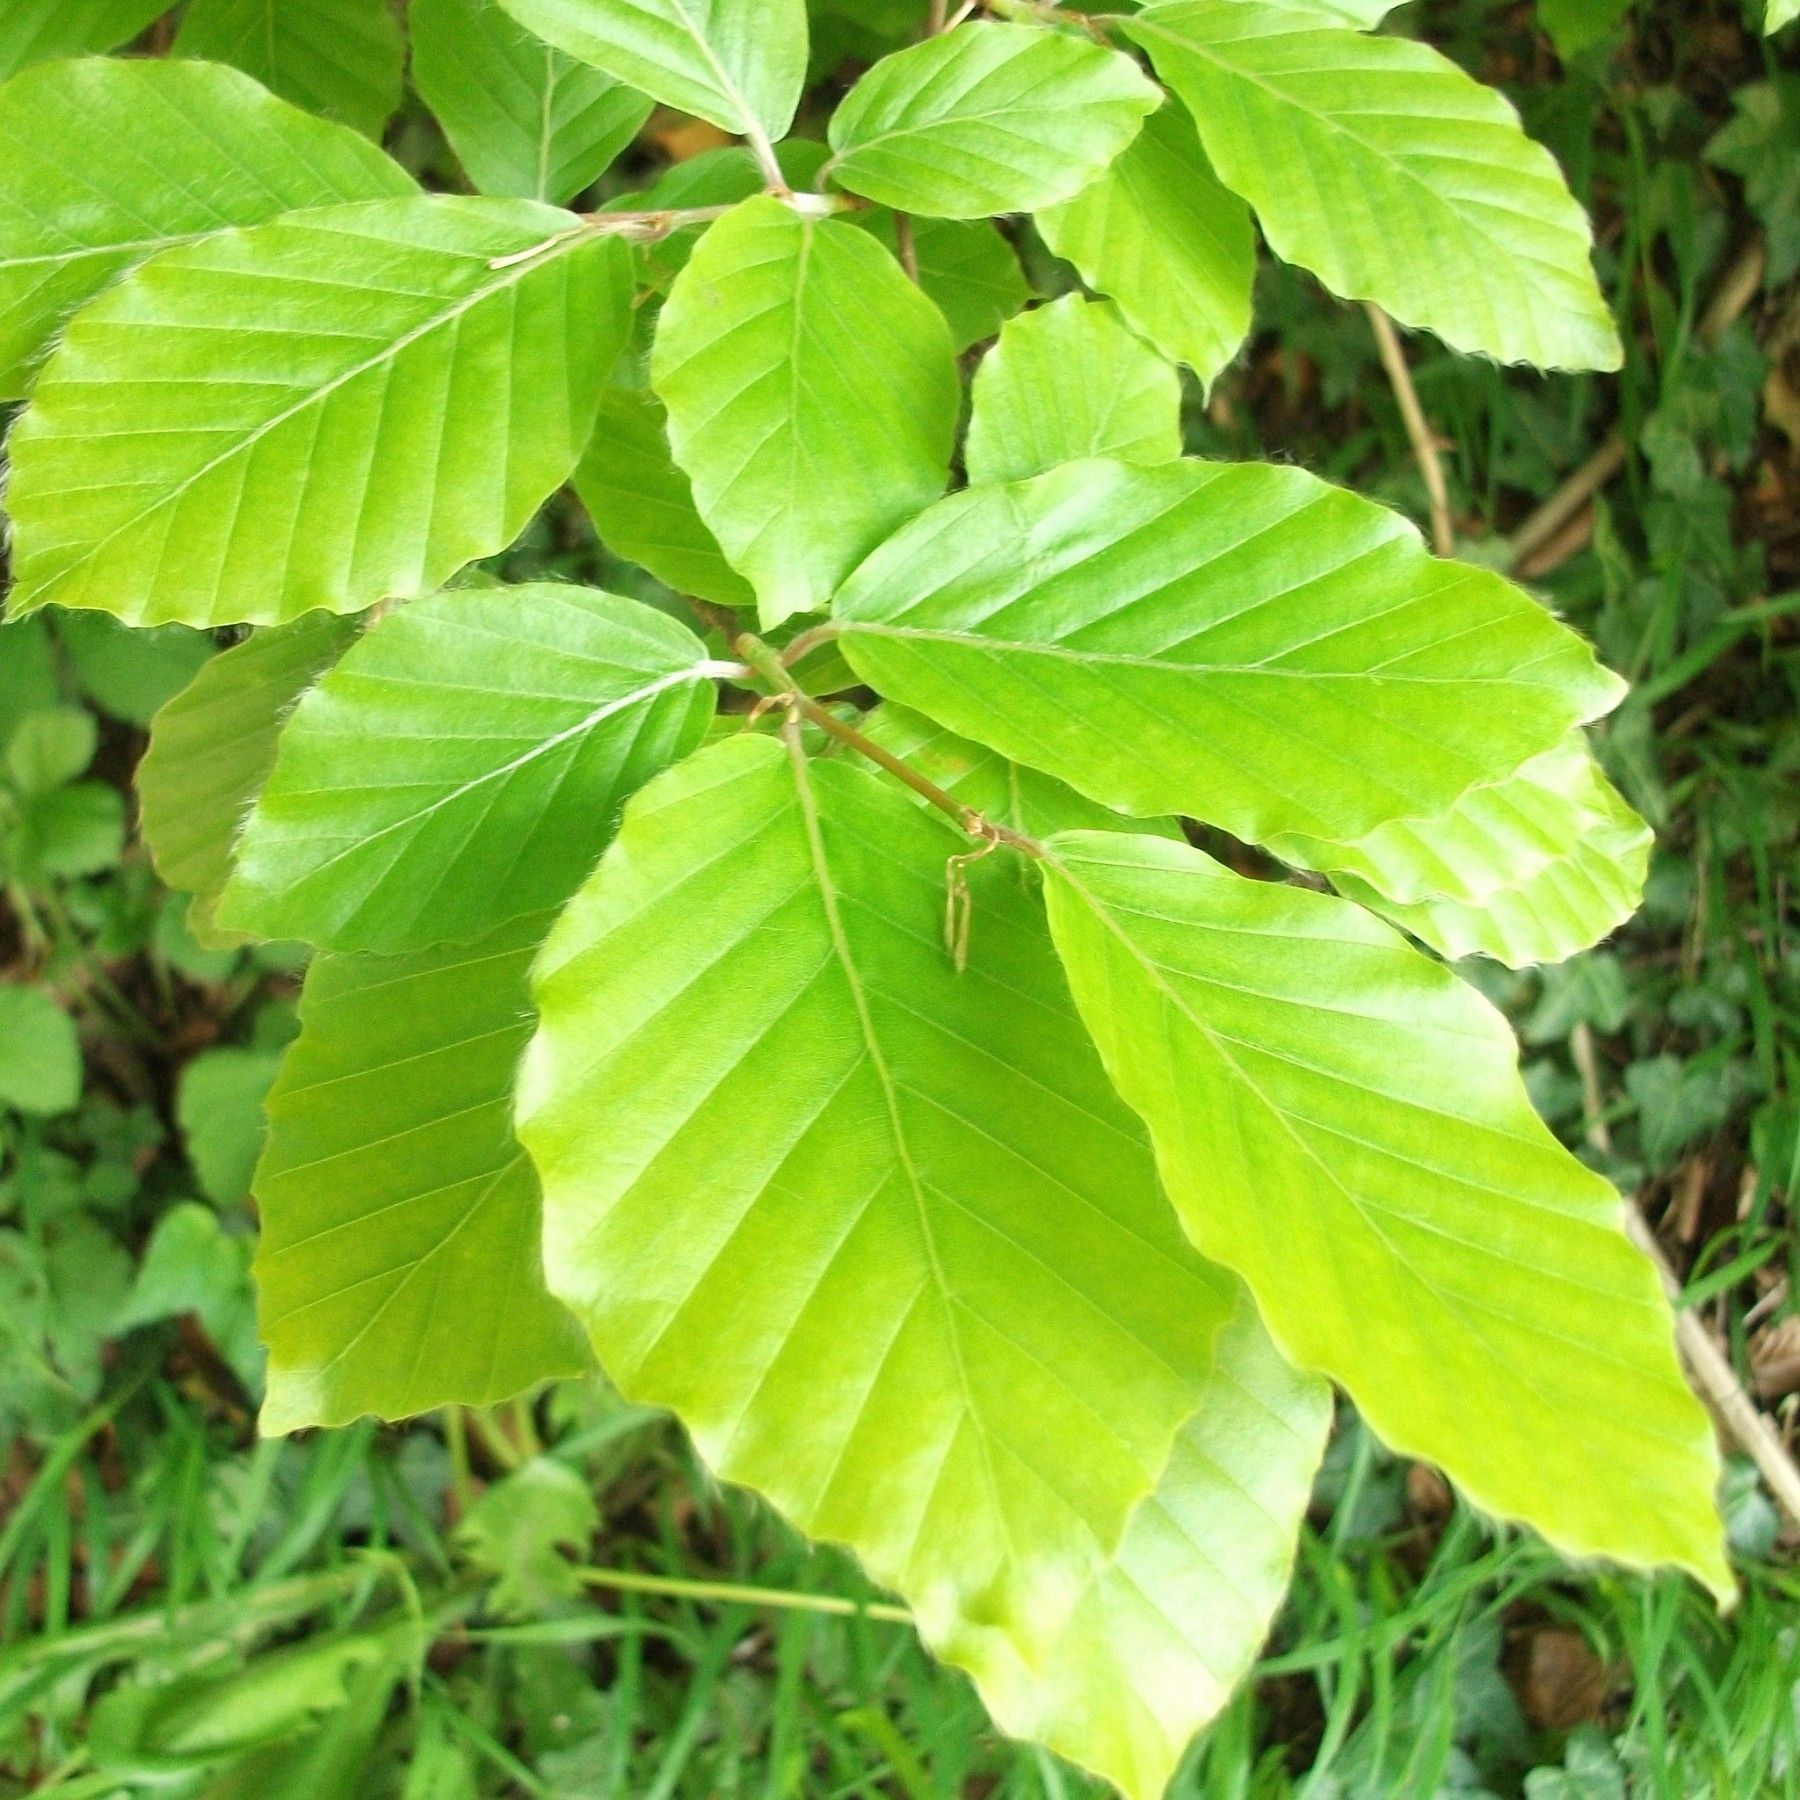 Green Beech Hedging Plants 2 3ft Fagus Sylvatica Grade A Stock Hedging Plants Plant Identification Plants